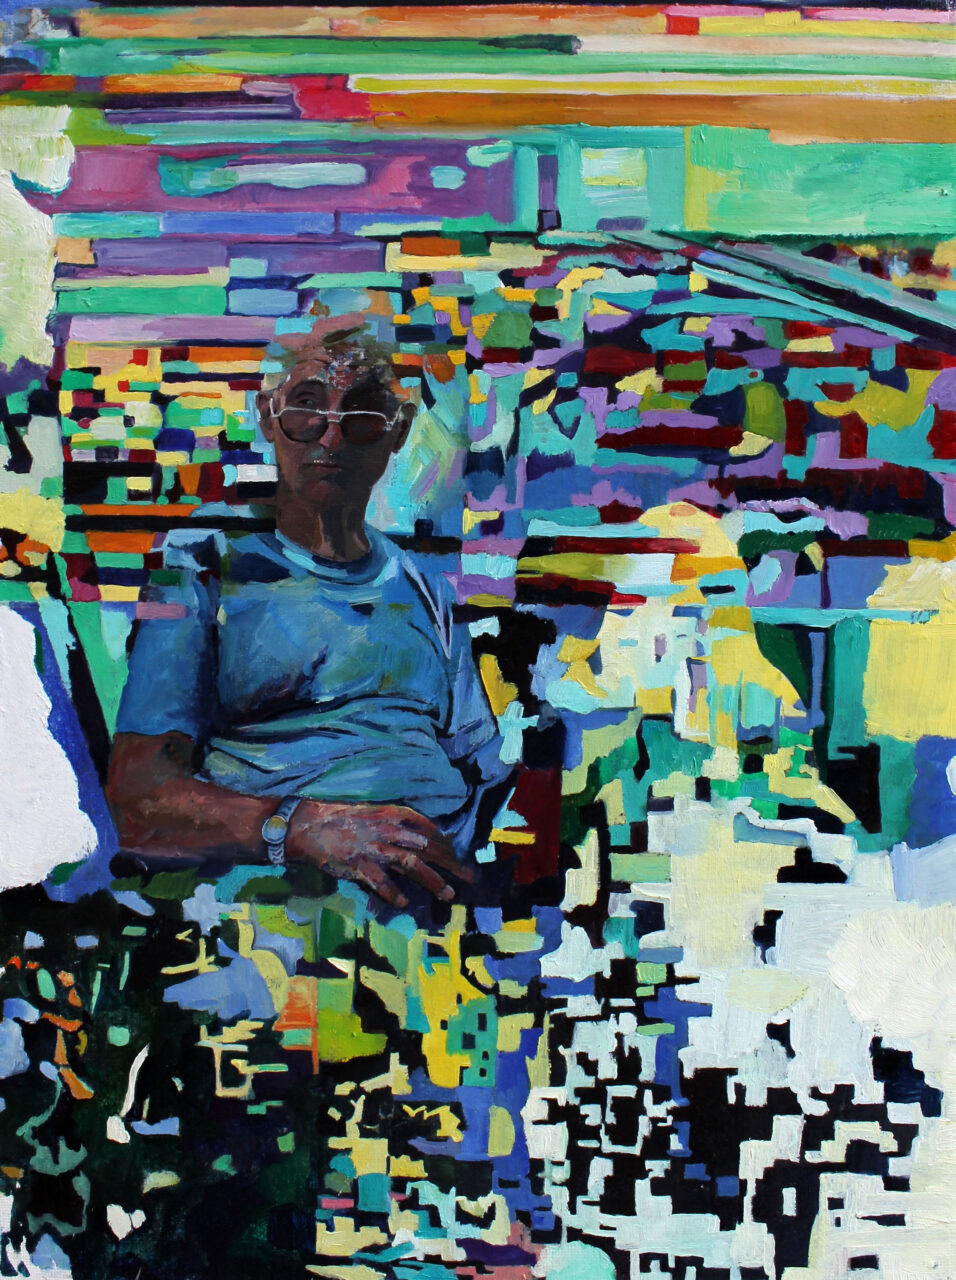 Glitched Memories, 2020, oil on canvas, diptych: 60 x 40 cm